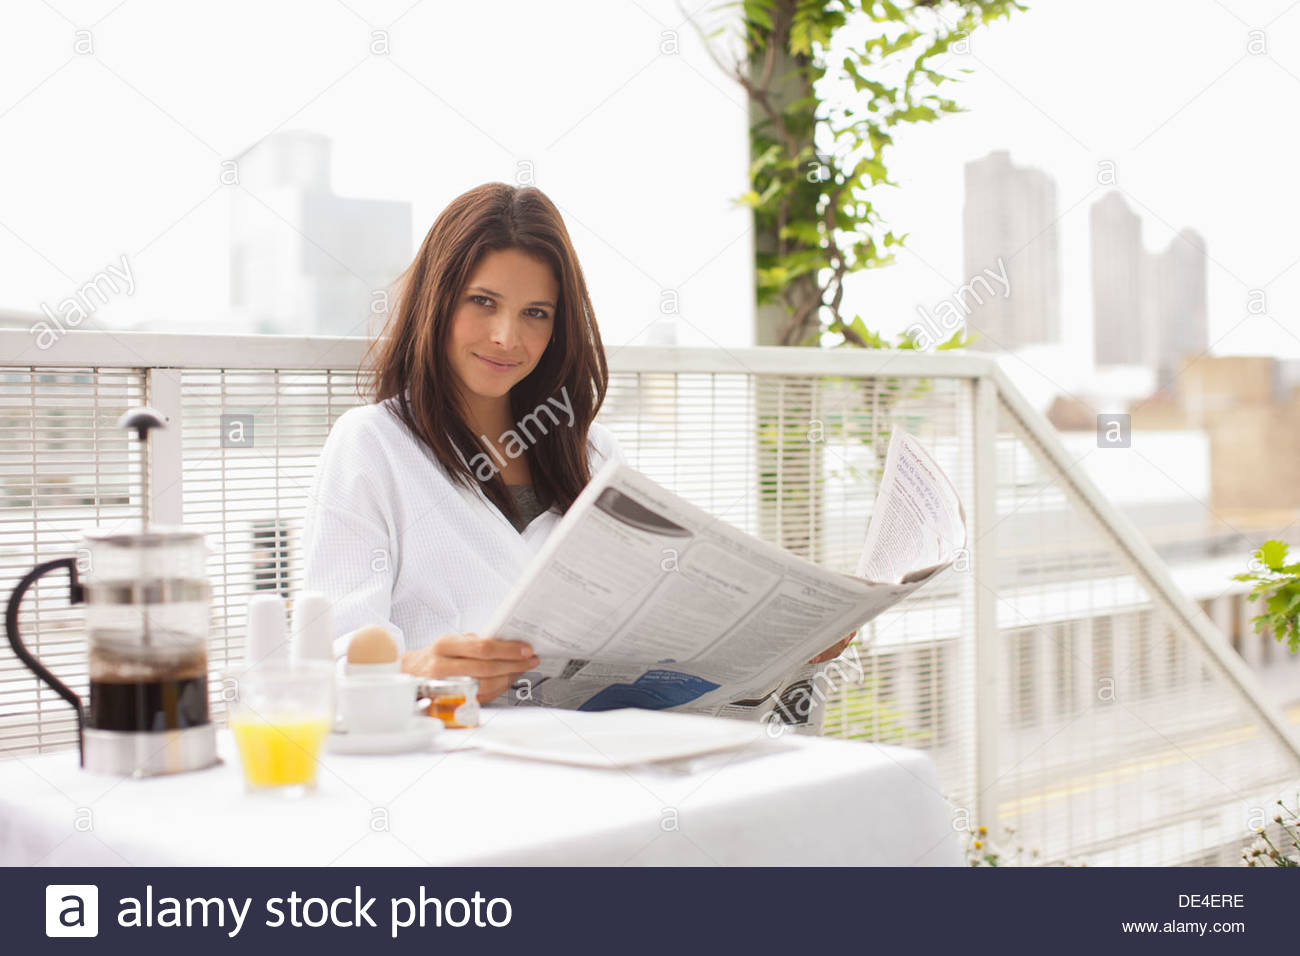 Woman reading newspaper and having breakfast on balcony - Stock Image